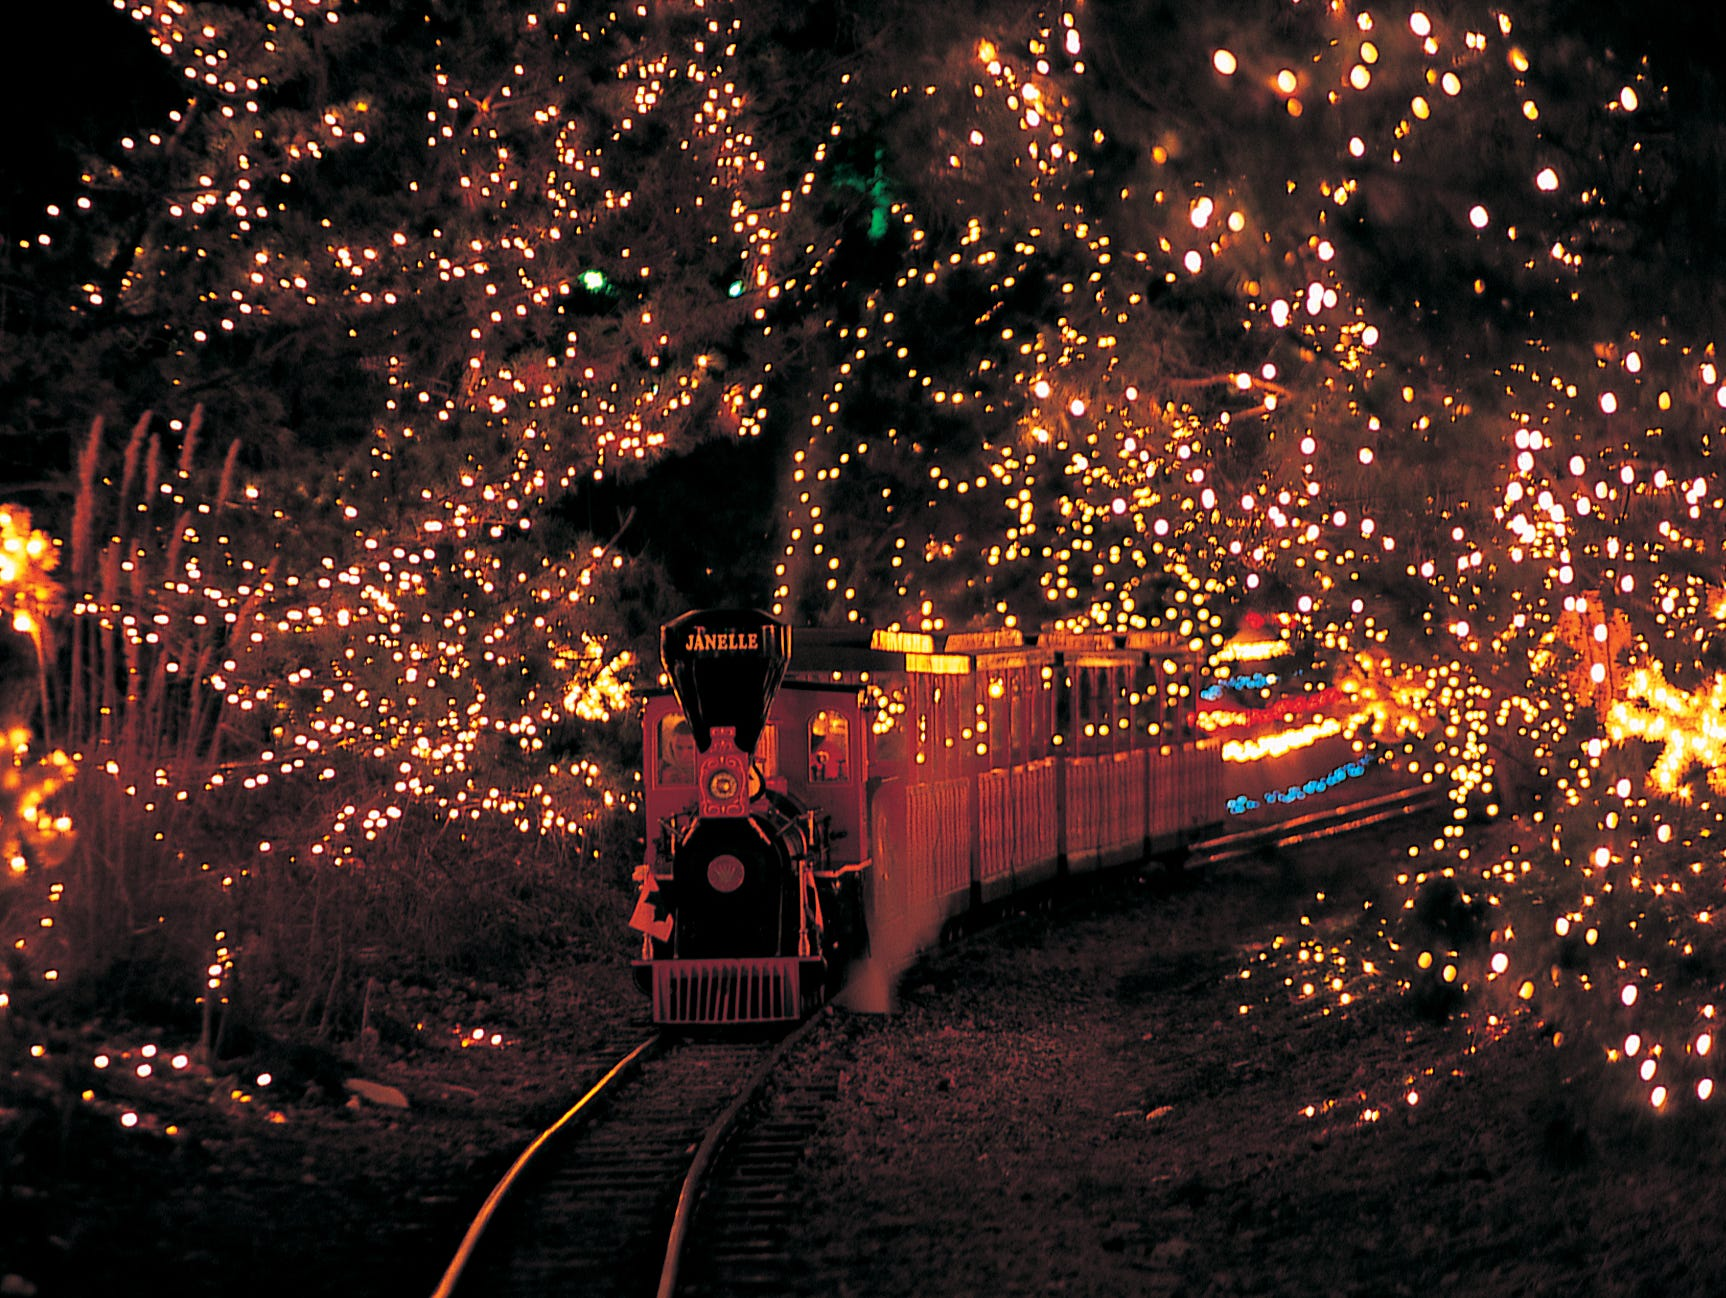 Families can take a holiday train ride through the gardens of Hersheypark.